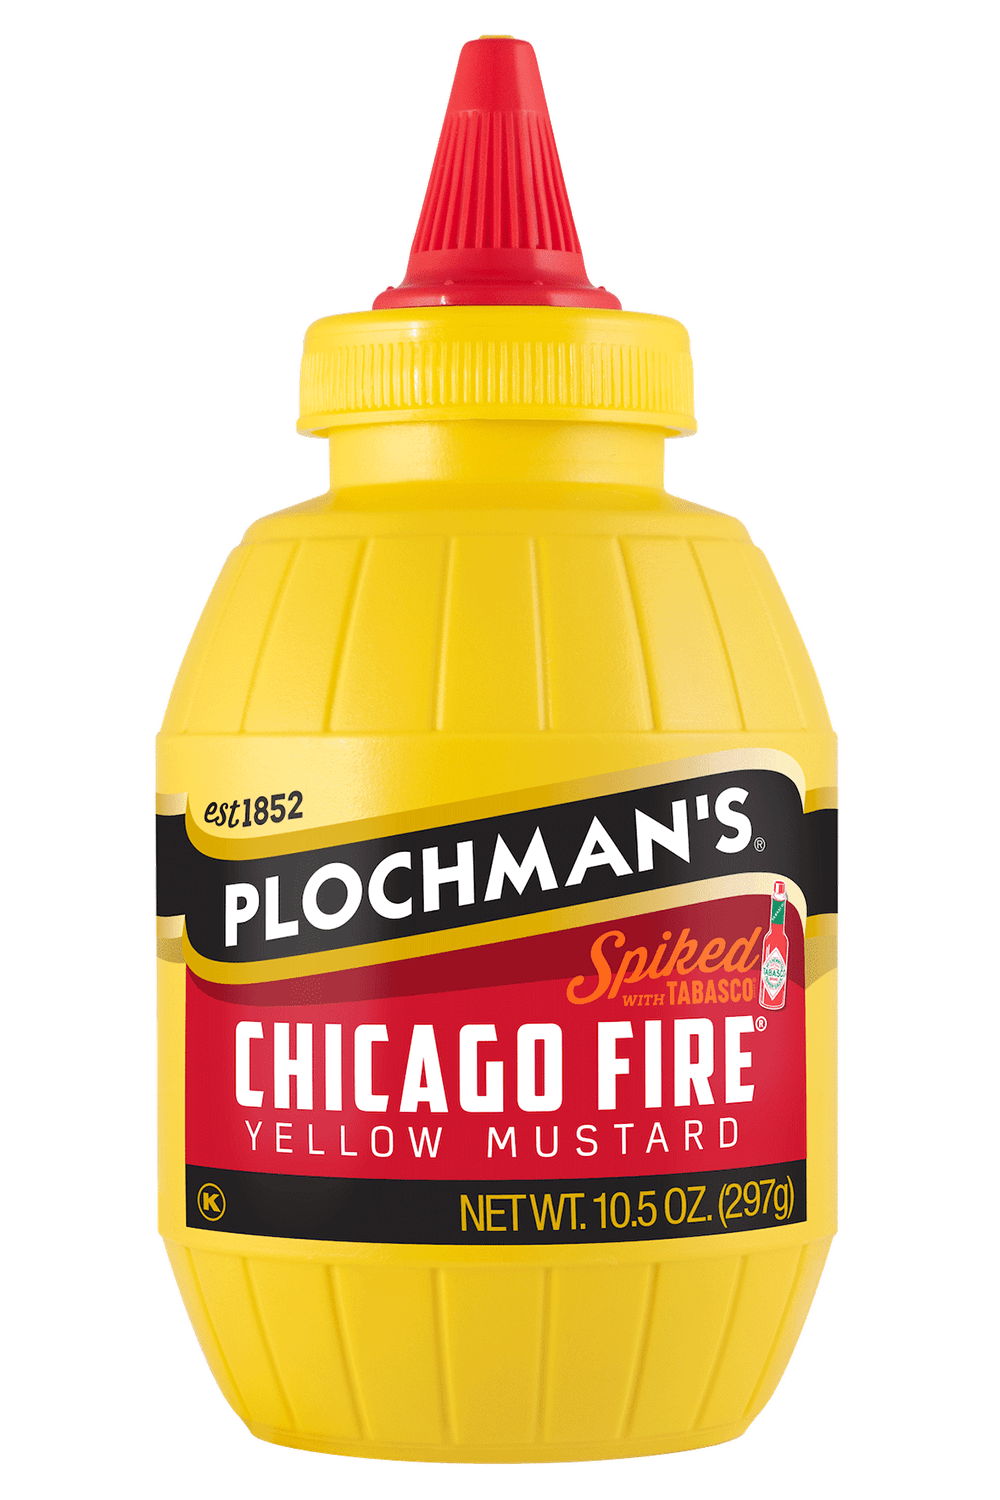 Plochman's Chicago Fire mustard in 10.5oz barrel bottle